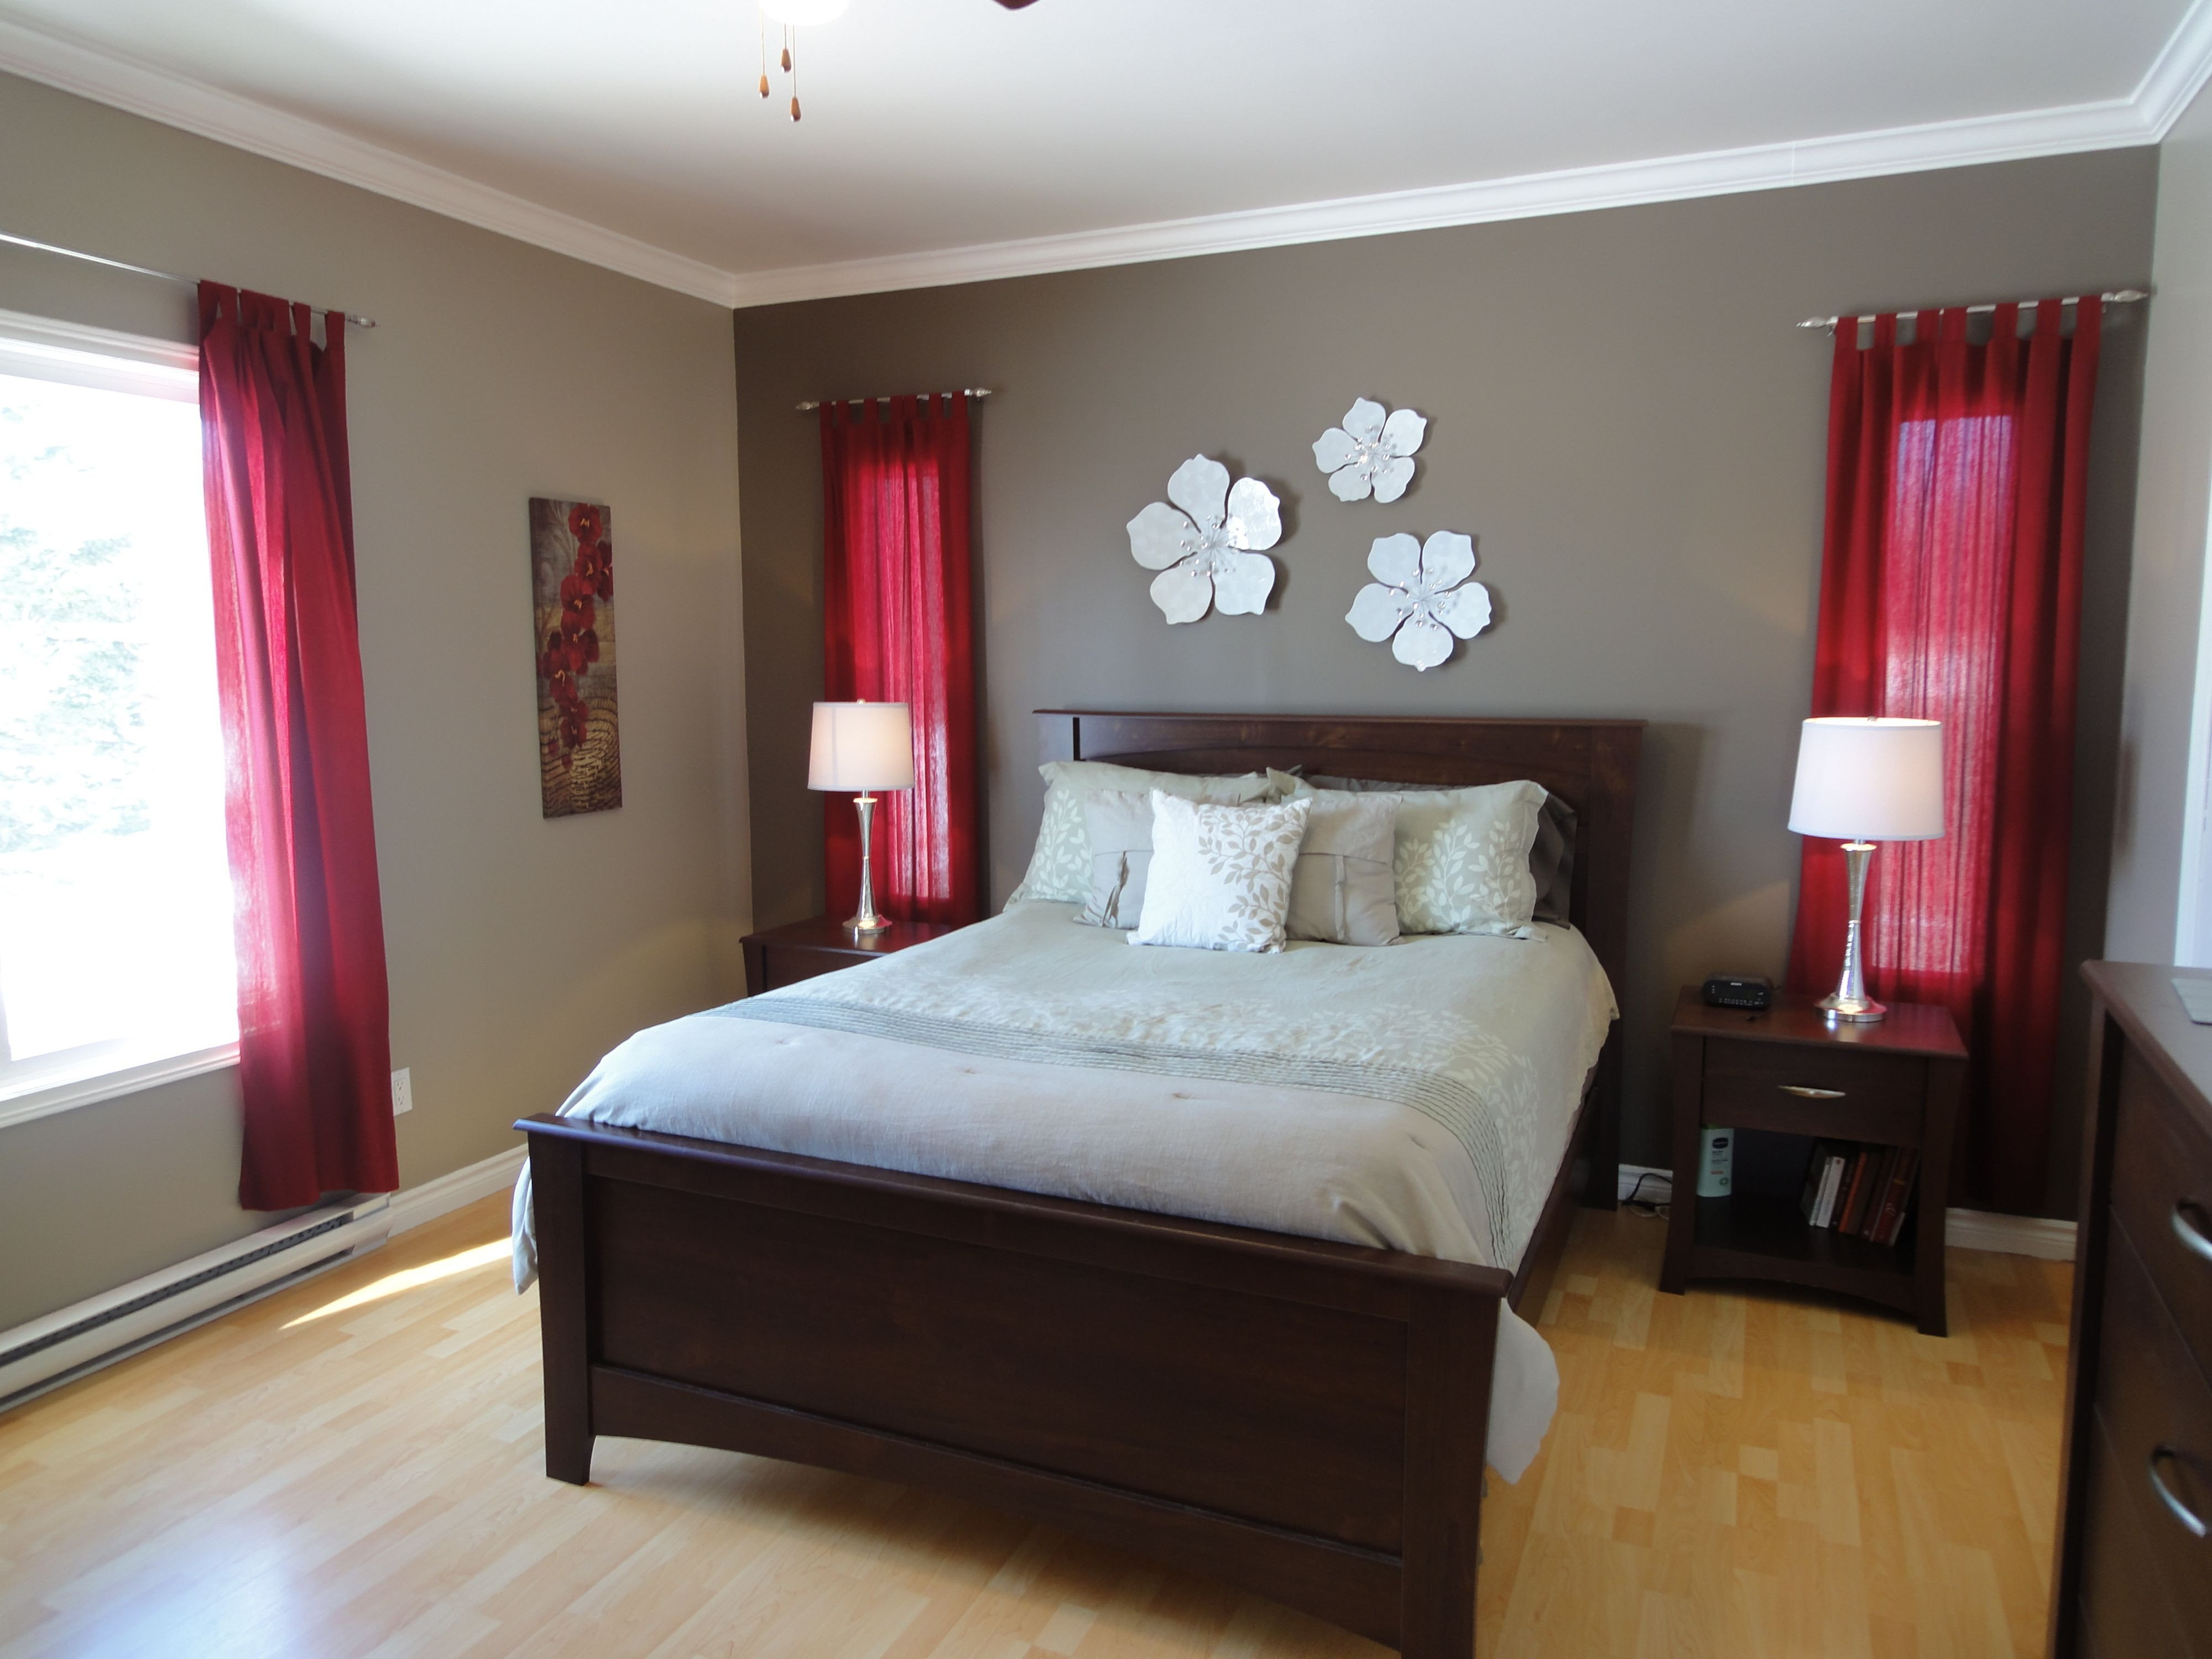 Black and Silver Bedroom Ideas Beautiful I Just Decorated Our Guest Bedroom with Red Accents I Would